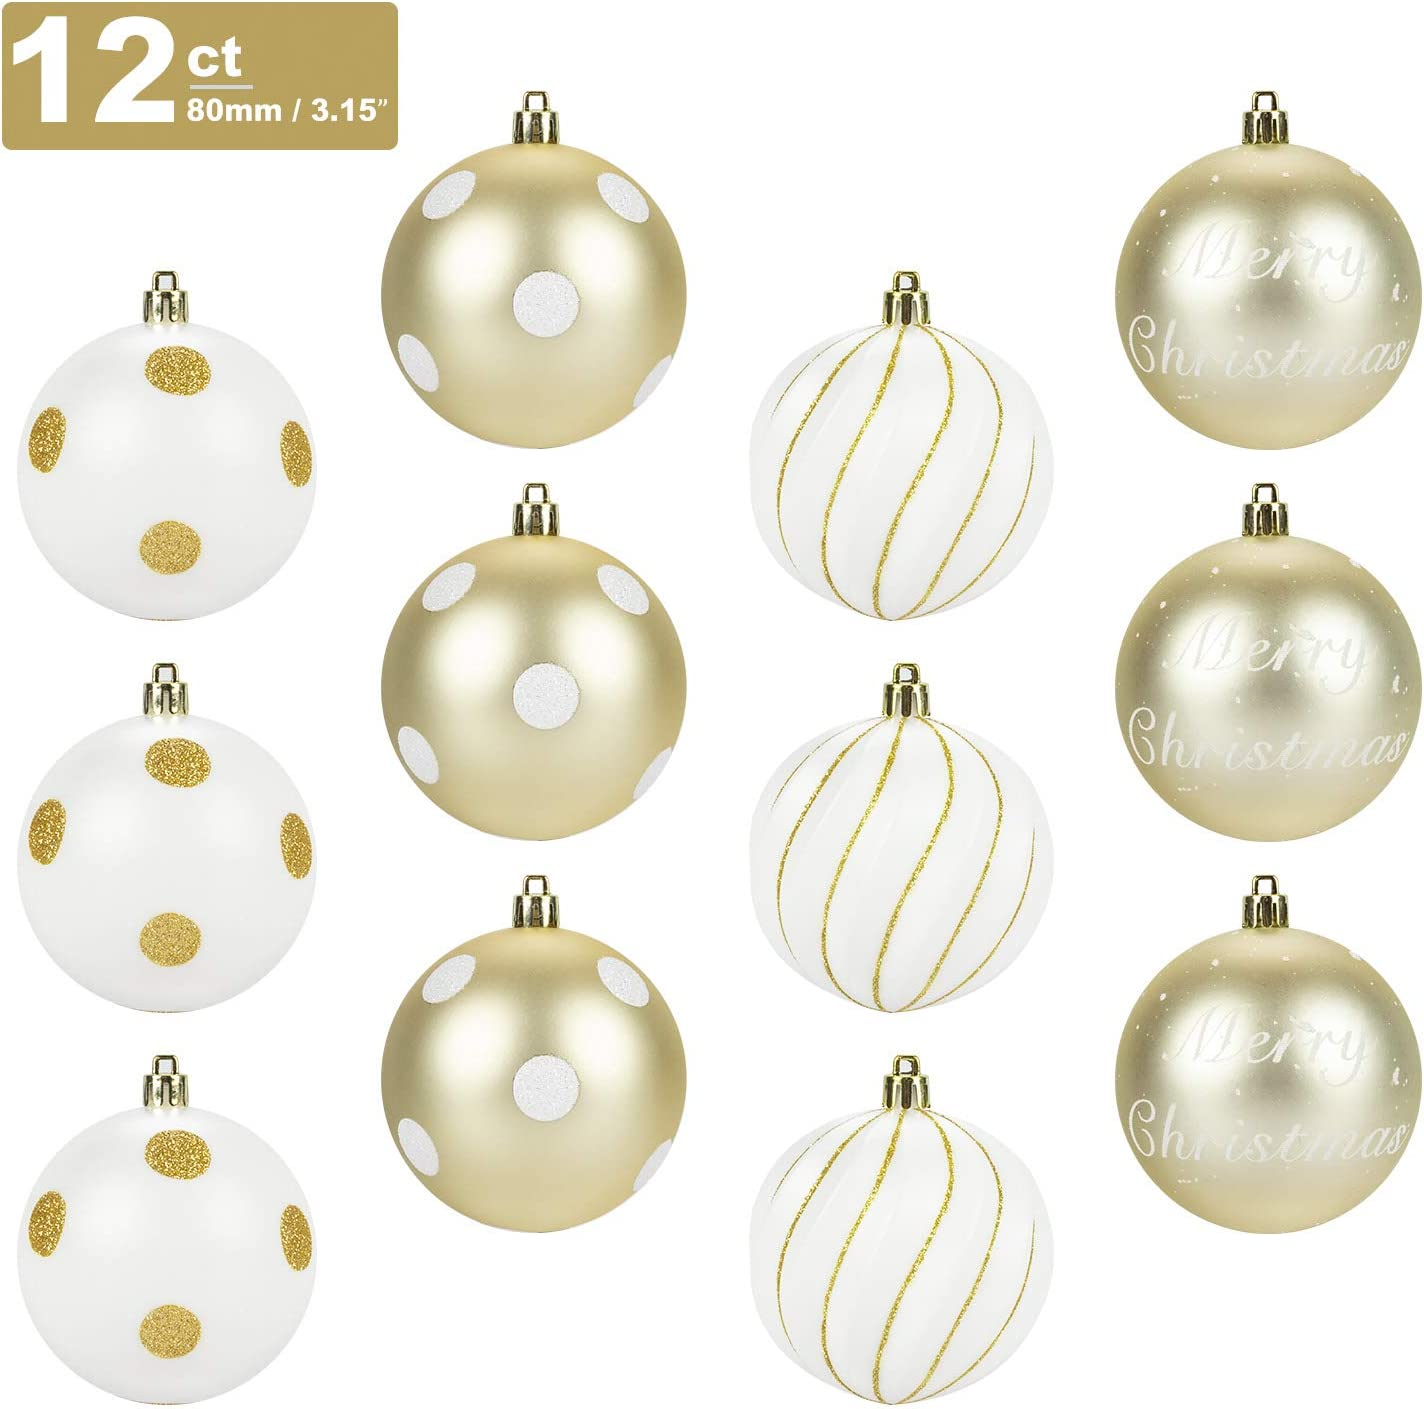 Shiny Sparkly Soft Xmas Metallic Tinsel Classic Hanging Ornaments for Christmas Tree Holiday New Years Eve Party Indoor Outdoor Ceiling Decorations Alphatool 6Pcs Christmas Golden Tinsel Garland